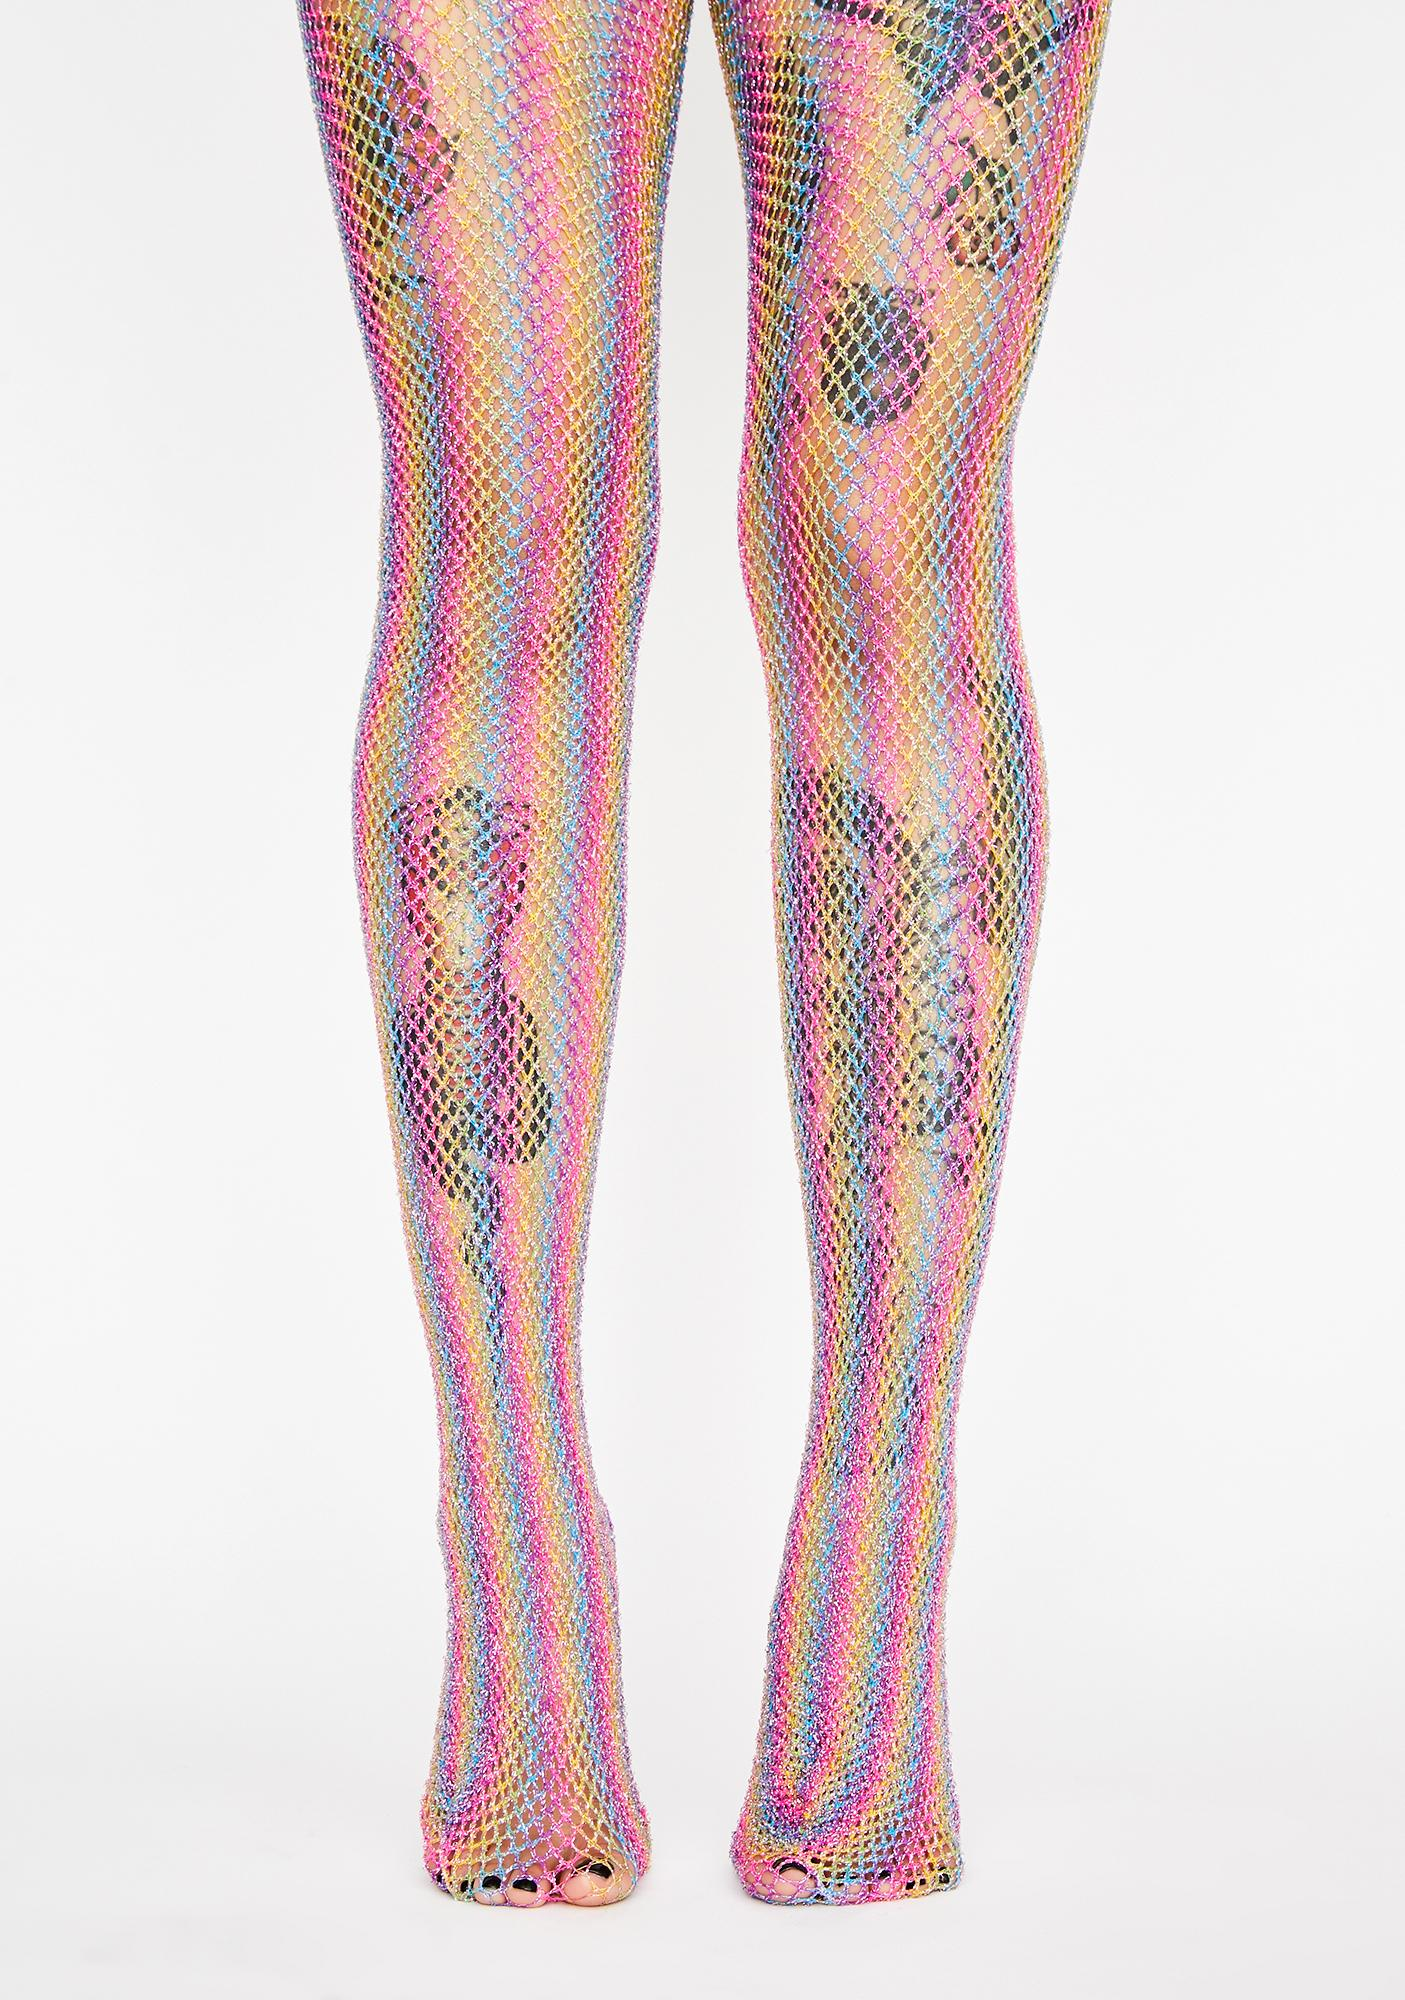 Now N' Later Fishnet Tights